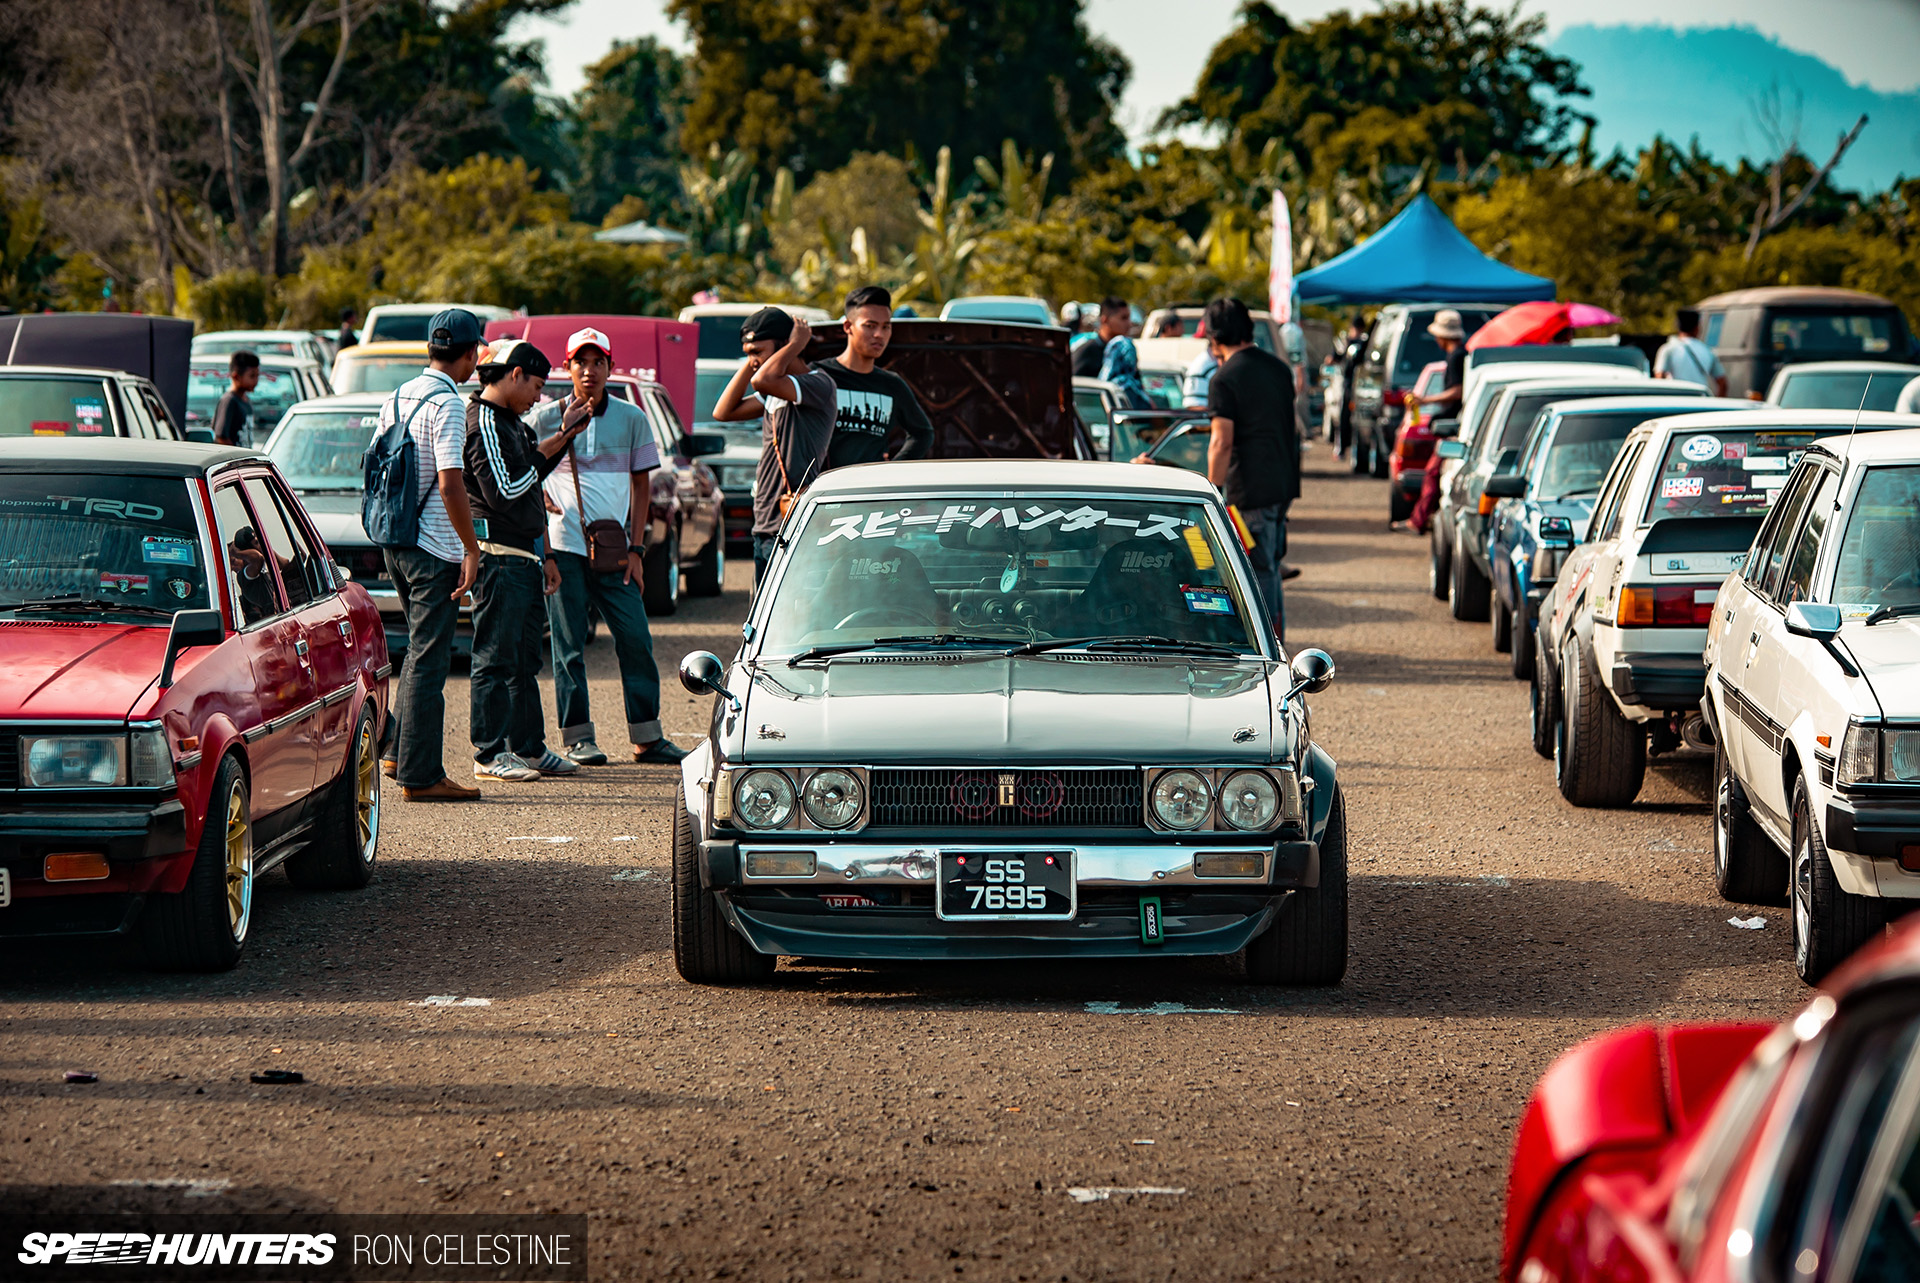 Tawau Raretro Day: An Exercise in How to Party - Speedhunters